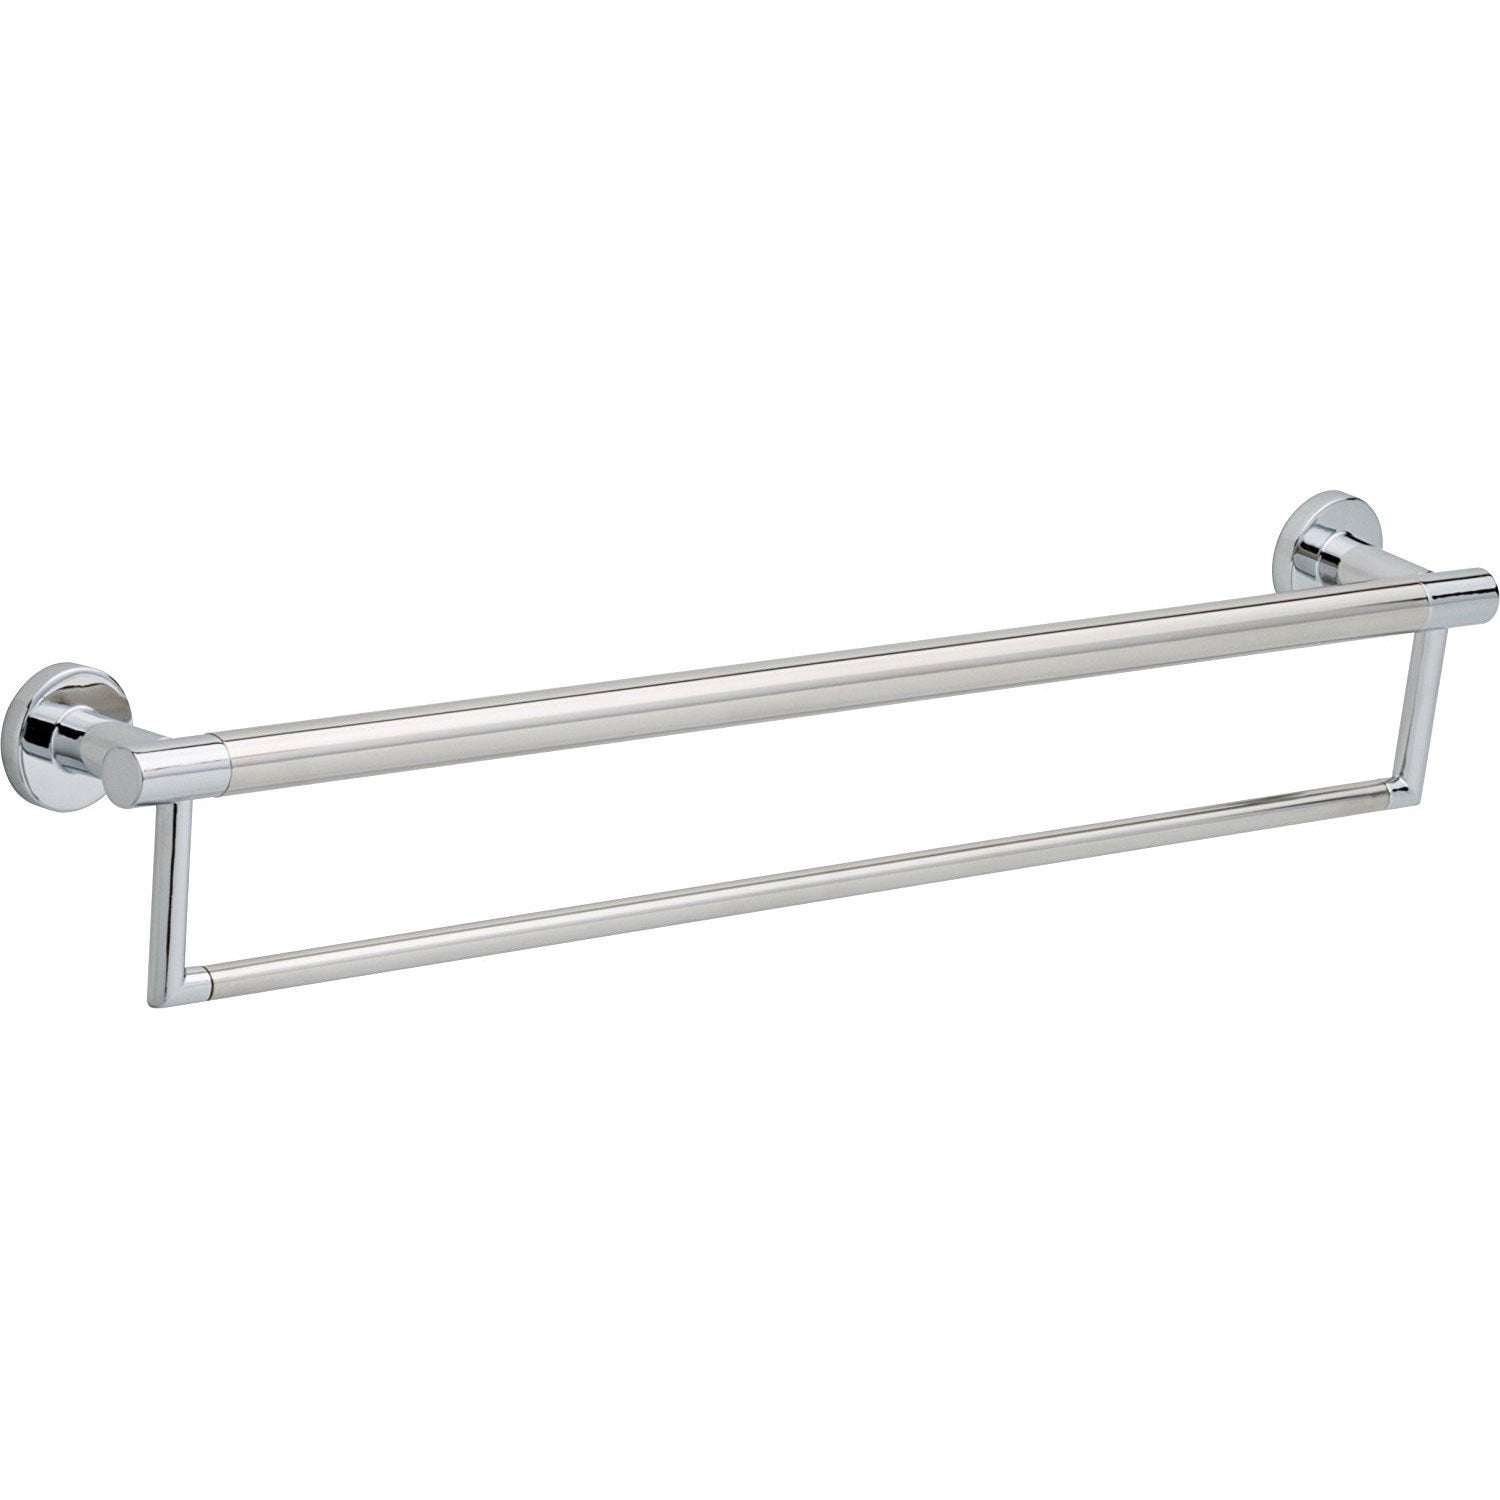 Delta Bath Safety Collection Chrome Finish Contemporary 24-inch Dual Towel Bar with Assist Grab Bar D41519